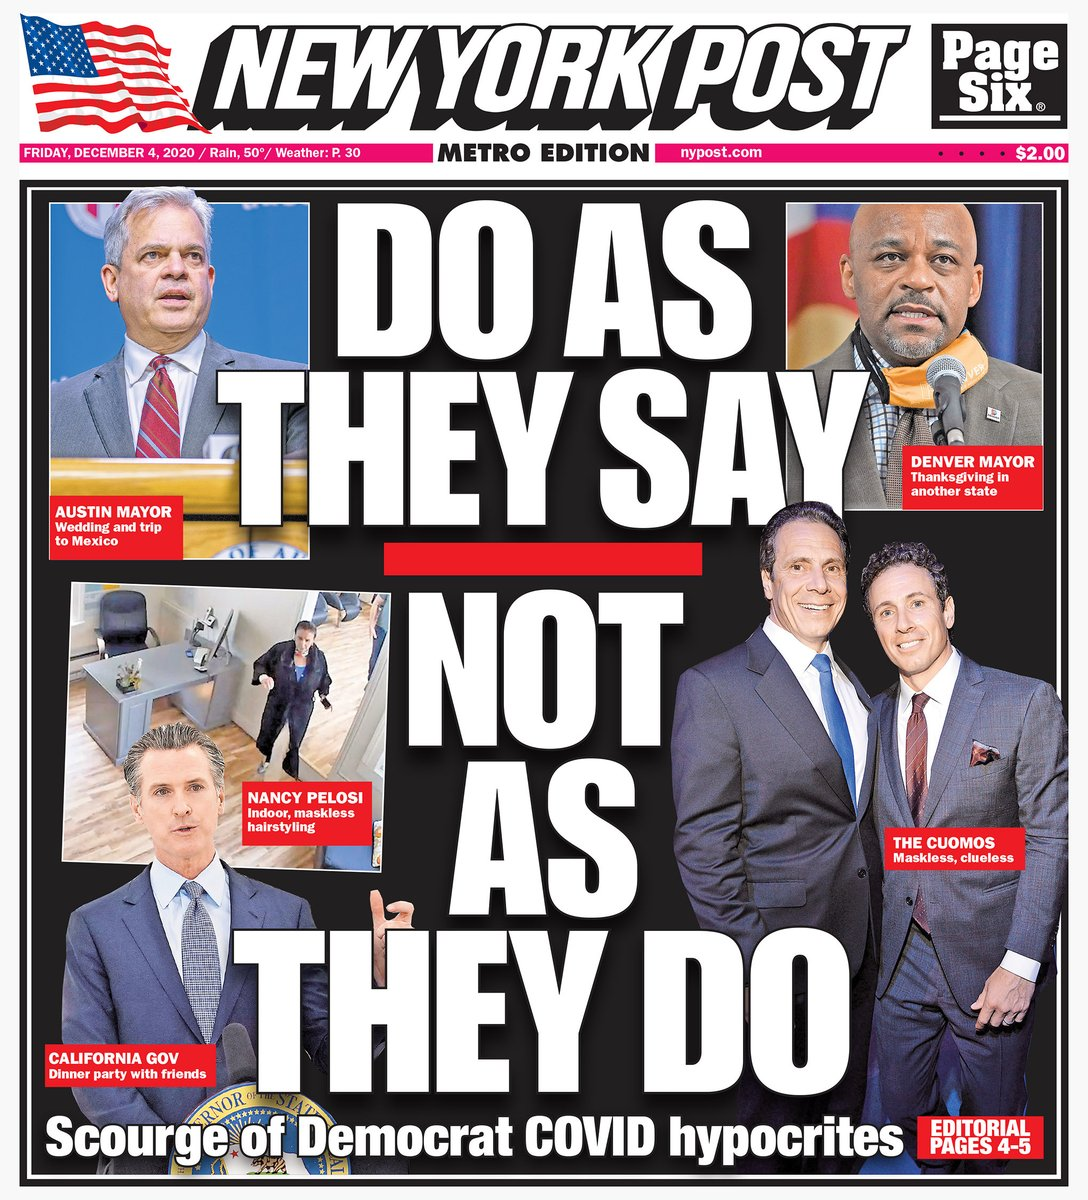 Today's cover: Democrat hypocrites are undermining COVID with 'do as I say, not as I do' attitude https://t.co/oDpvOR8gq0 https://t.co/iA5YHROS9g